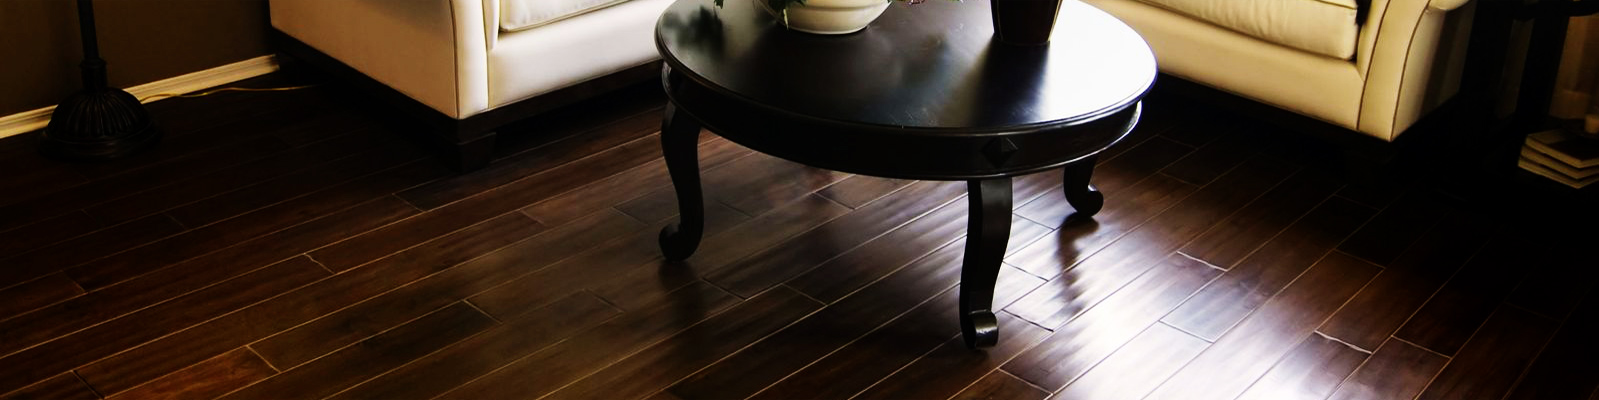 arizona flooring repair phoenix tile wood quality floors carpet laminate hardwood